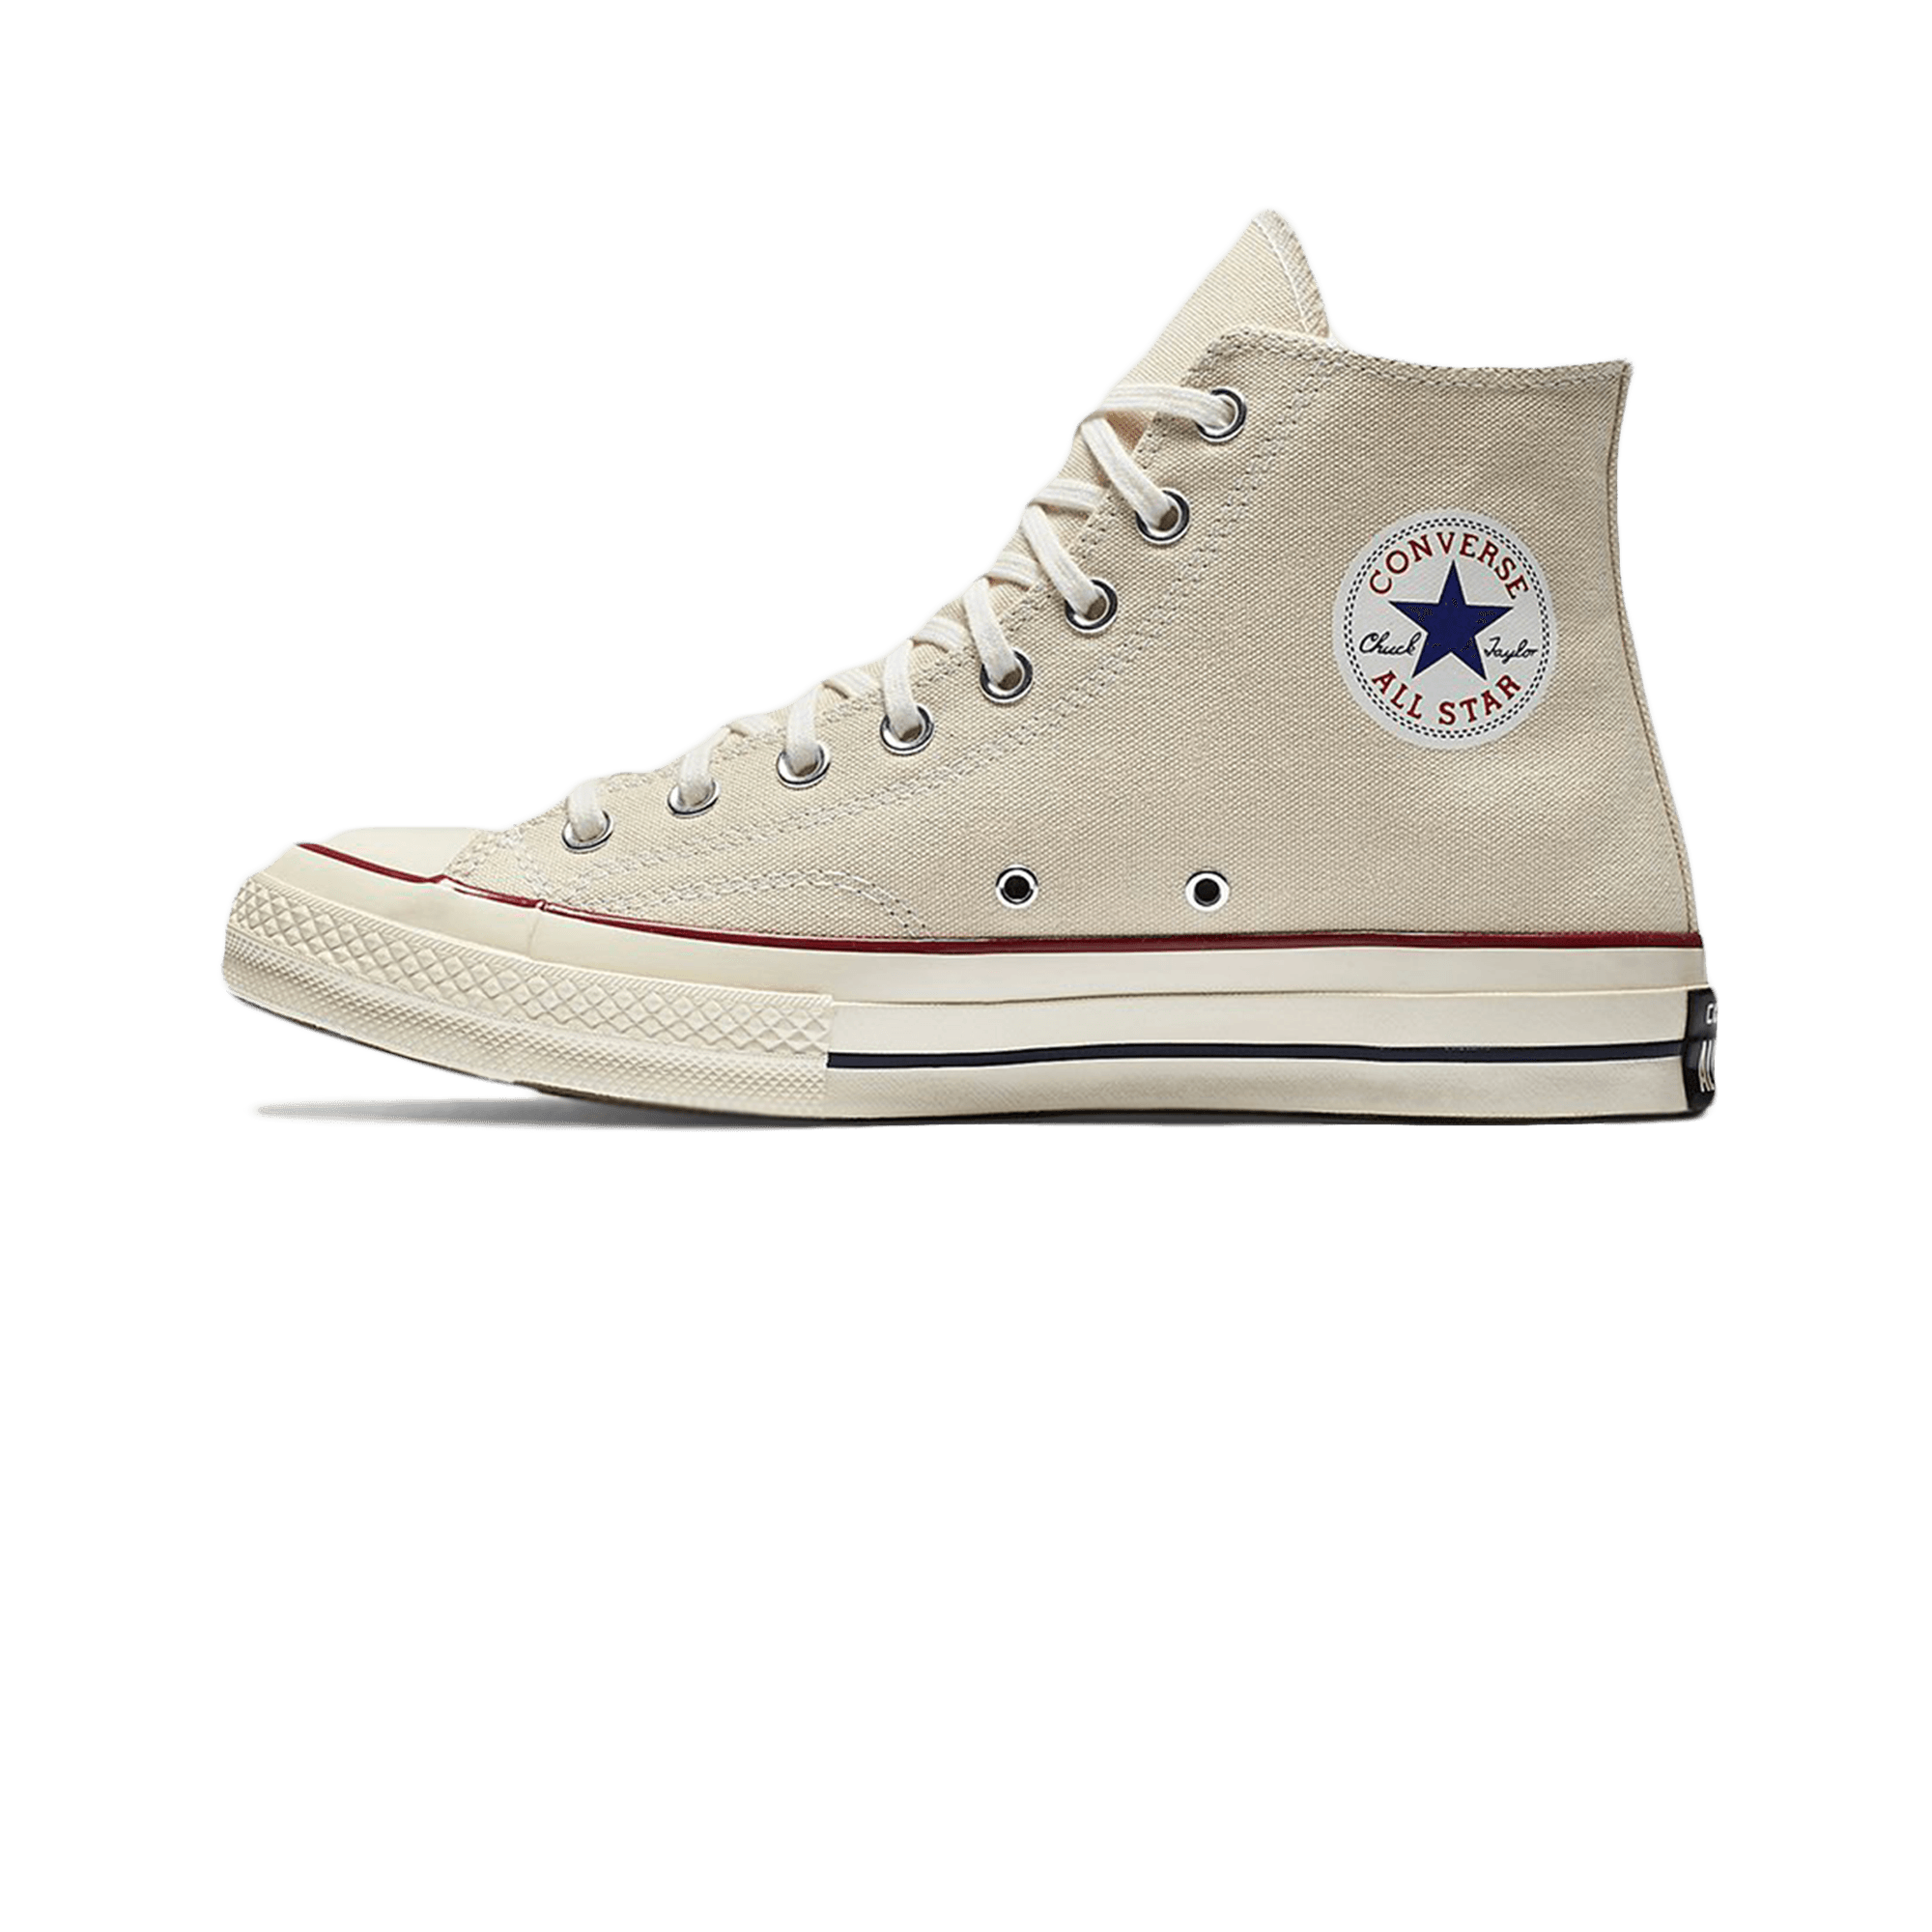 Chuck Taylor All Star '70 white